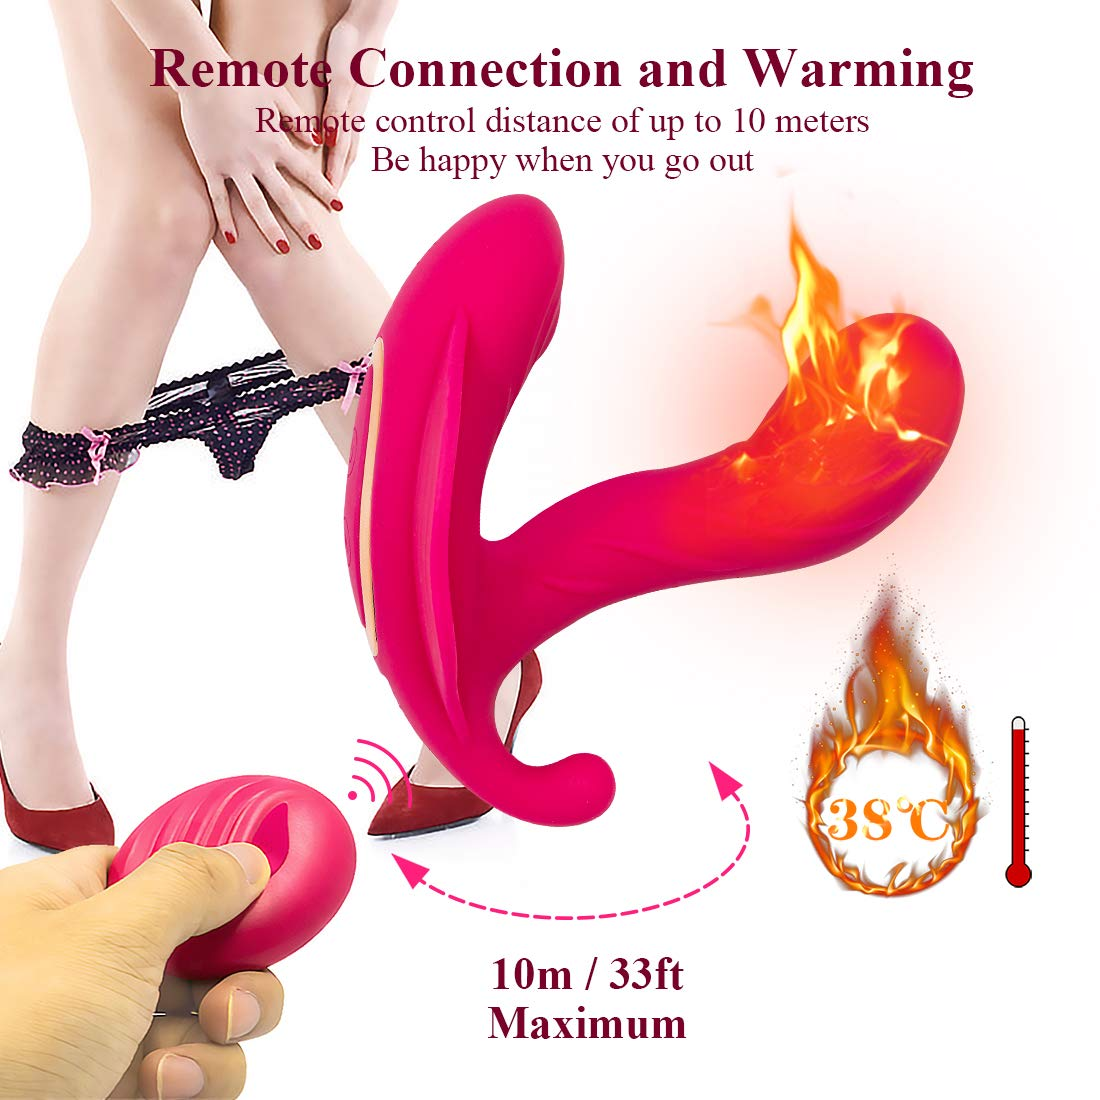 Wearable Vibrators Wireless USB Charging Remote Control Clitoral G spot Butterfly Massager Vibrating Panties Smart Heating 10 Vibration Flirting Dildo Sex Toy Adult Toys for Women Couple Female